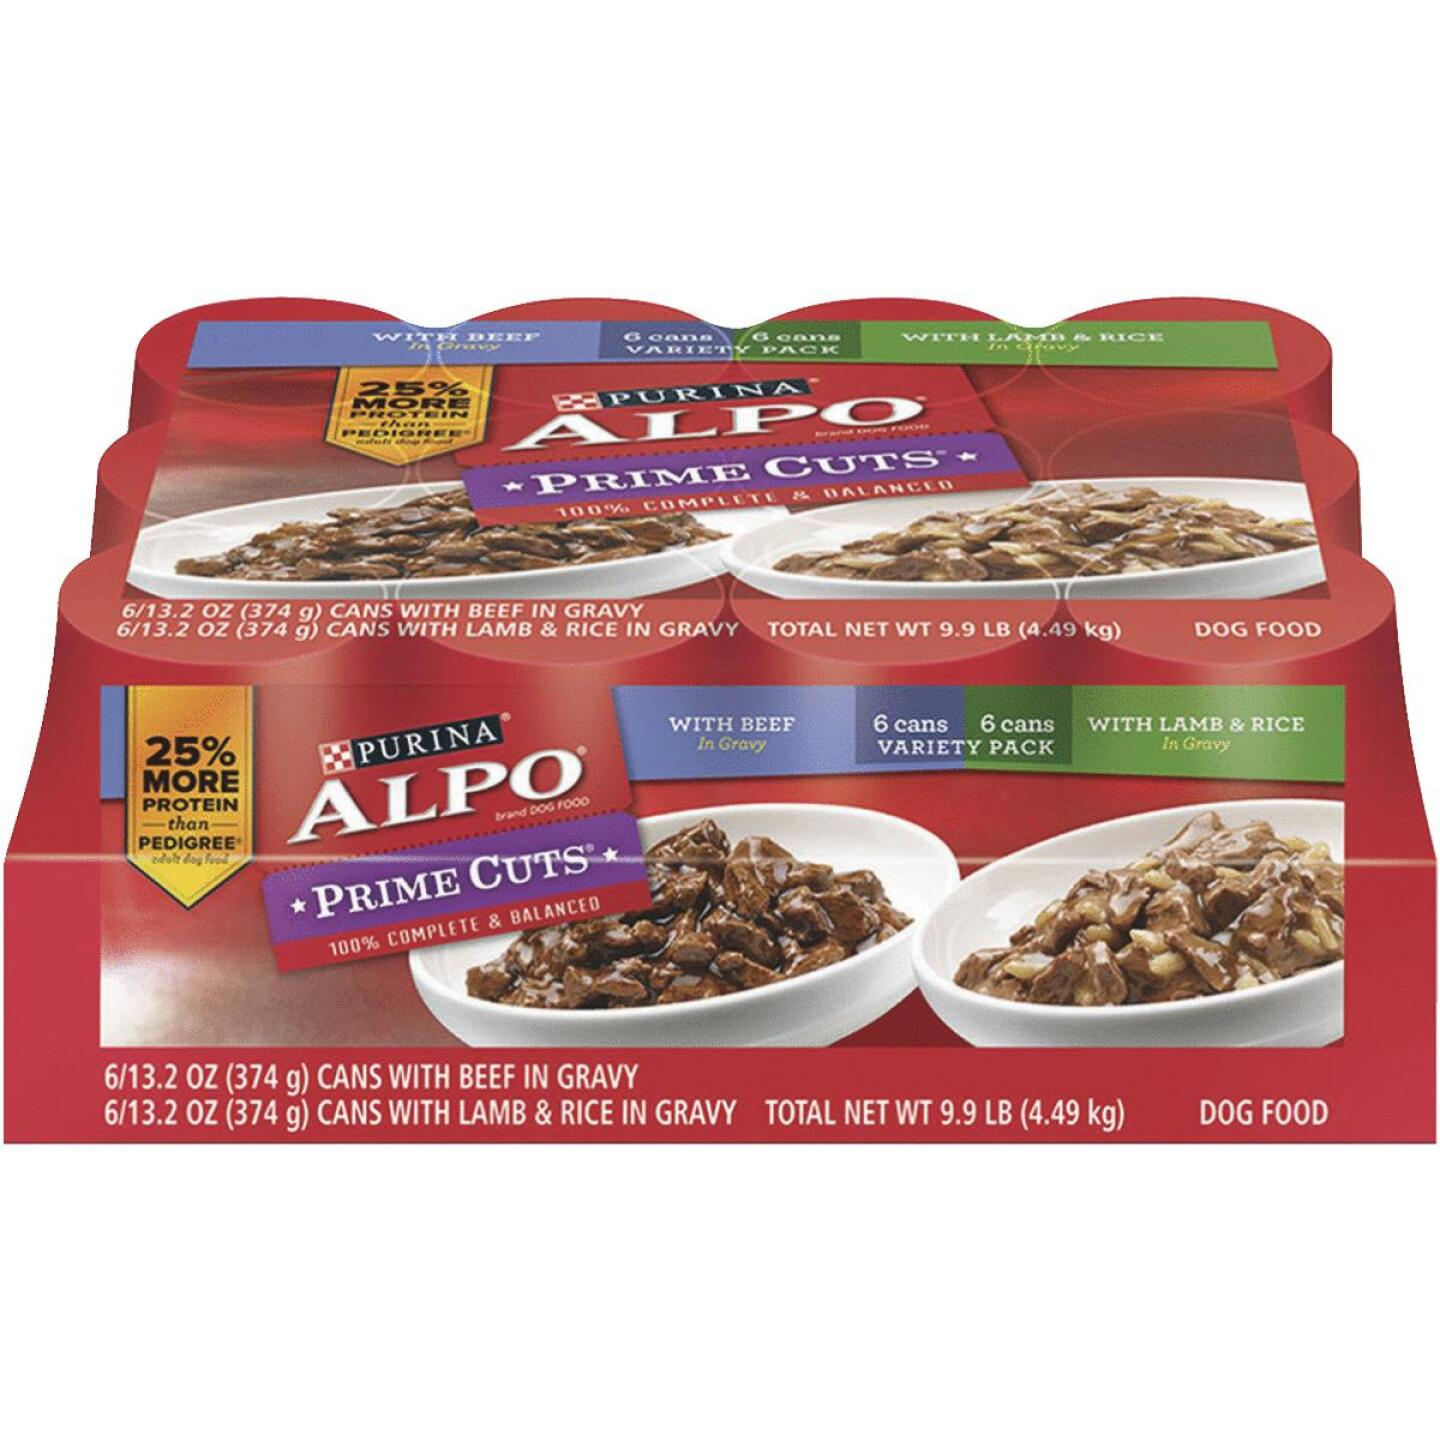 Alpo Prime Cuts Beef and Lamb & Rice Wet Dog Food, 12 Cans Image 1